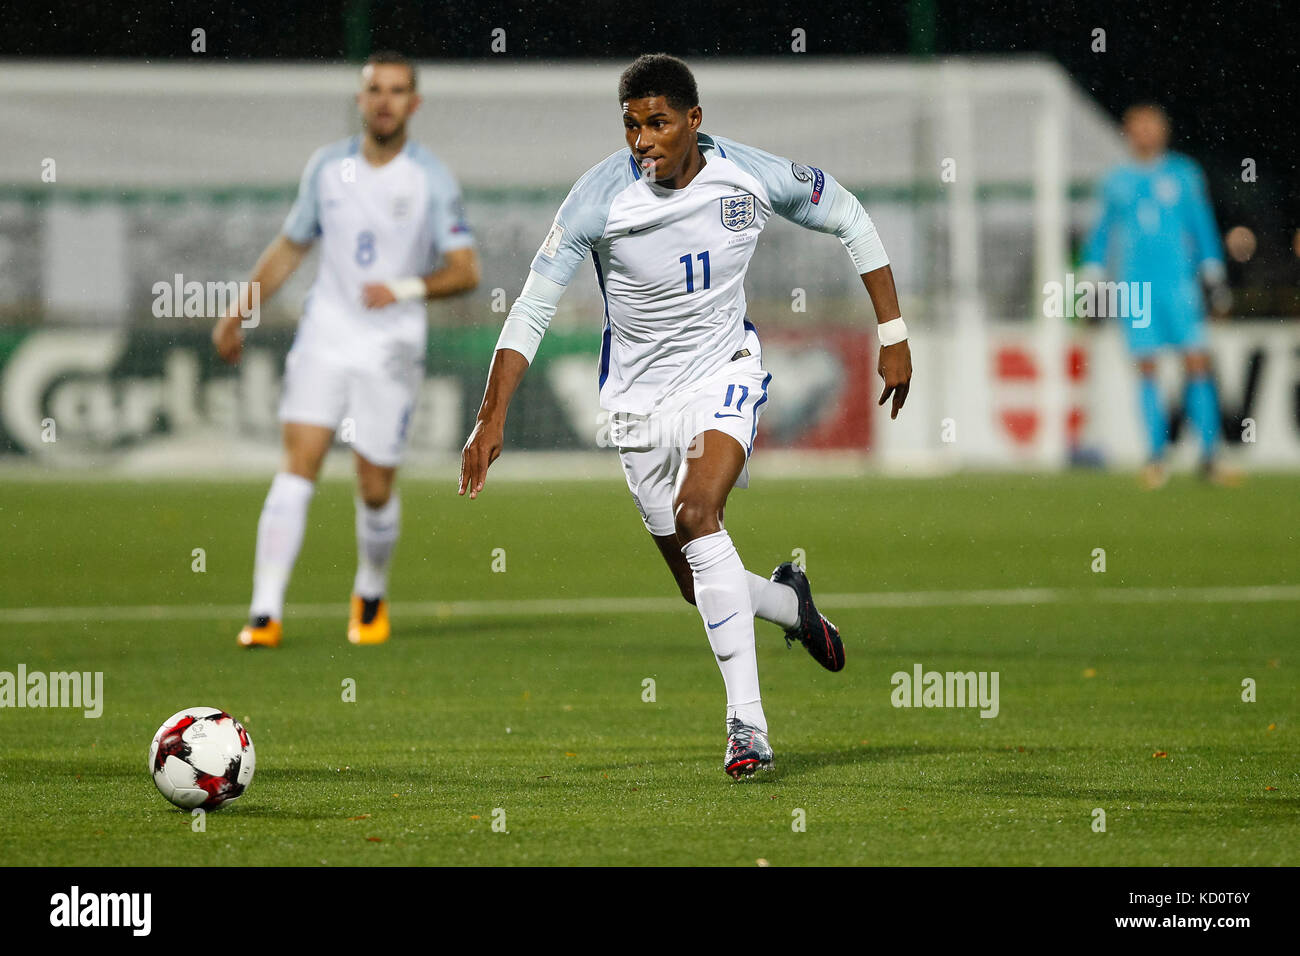 Vilnius, Lithuania. 8th Oct, 2017. Marcus Rashford of England during the FIFA World Cup 2018 Qualifying Group F - Stock Image